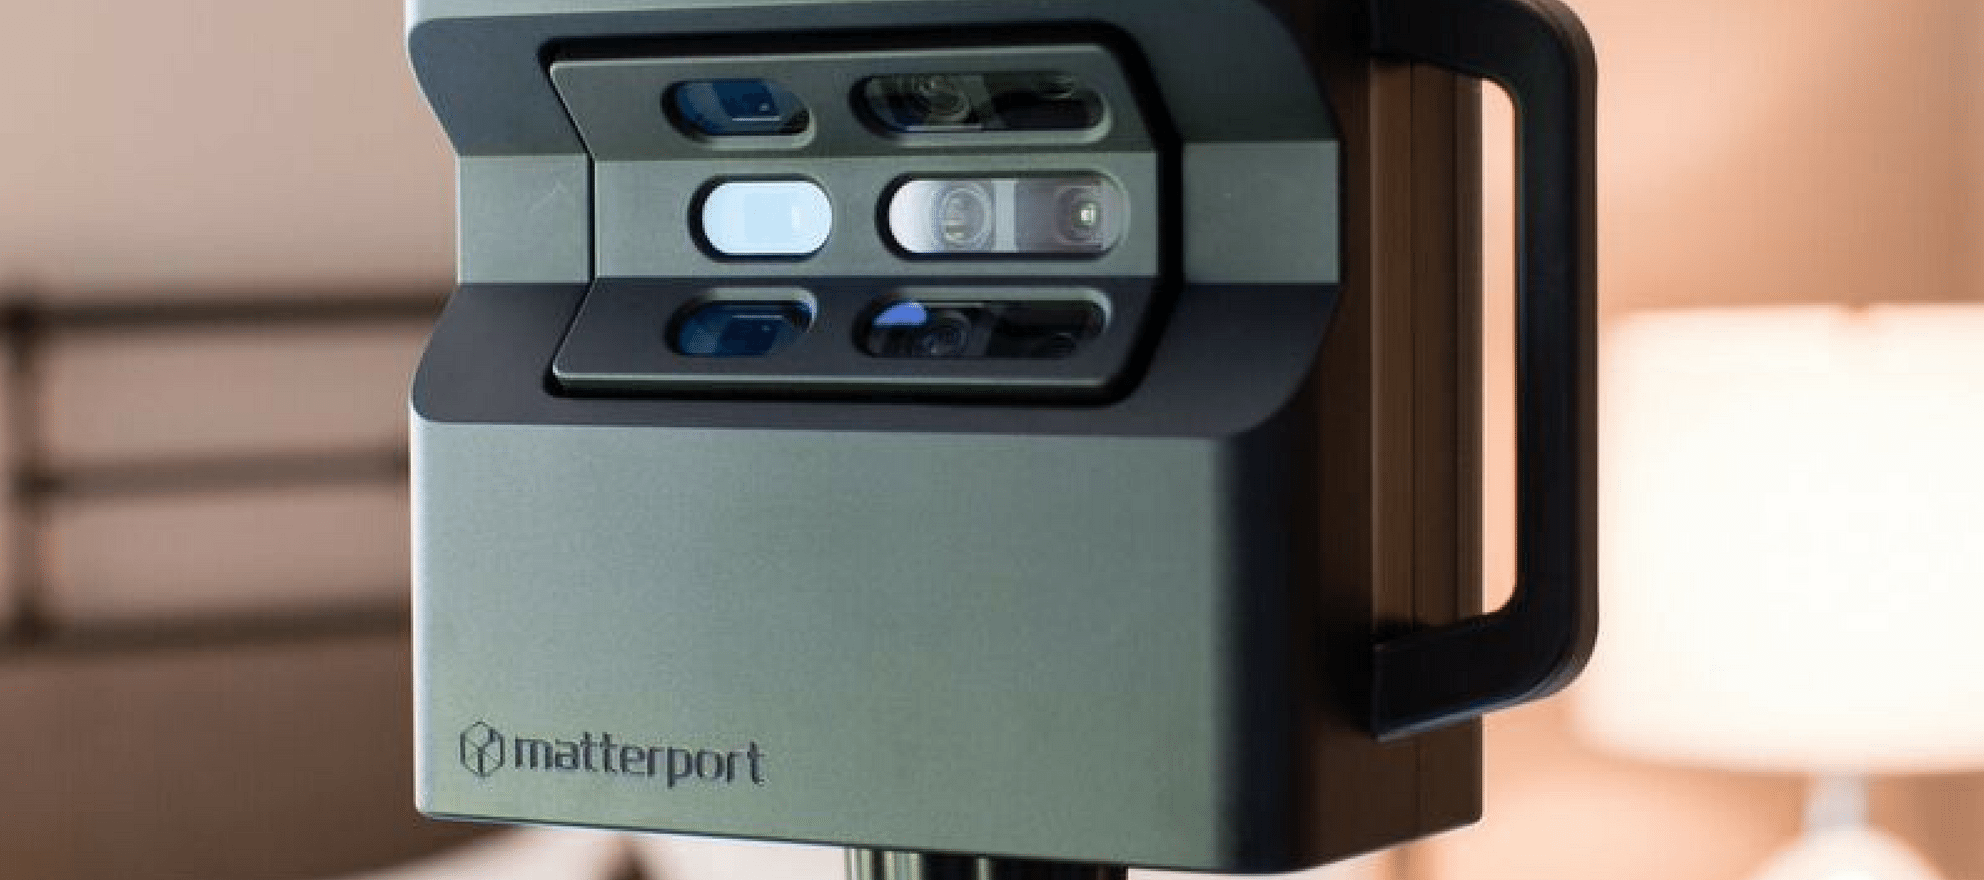 Matterport raises $48M to expand service offerings